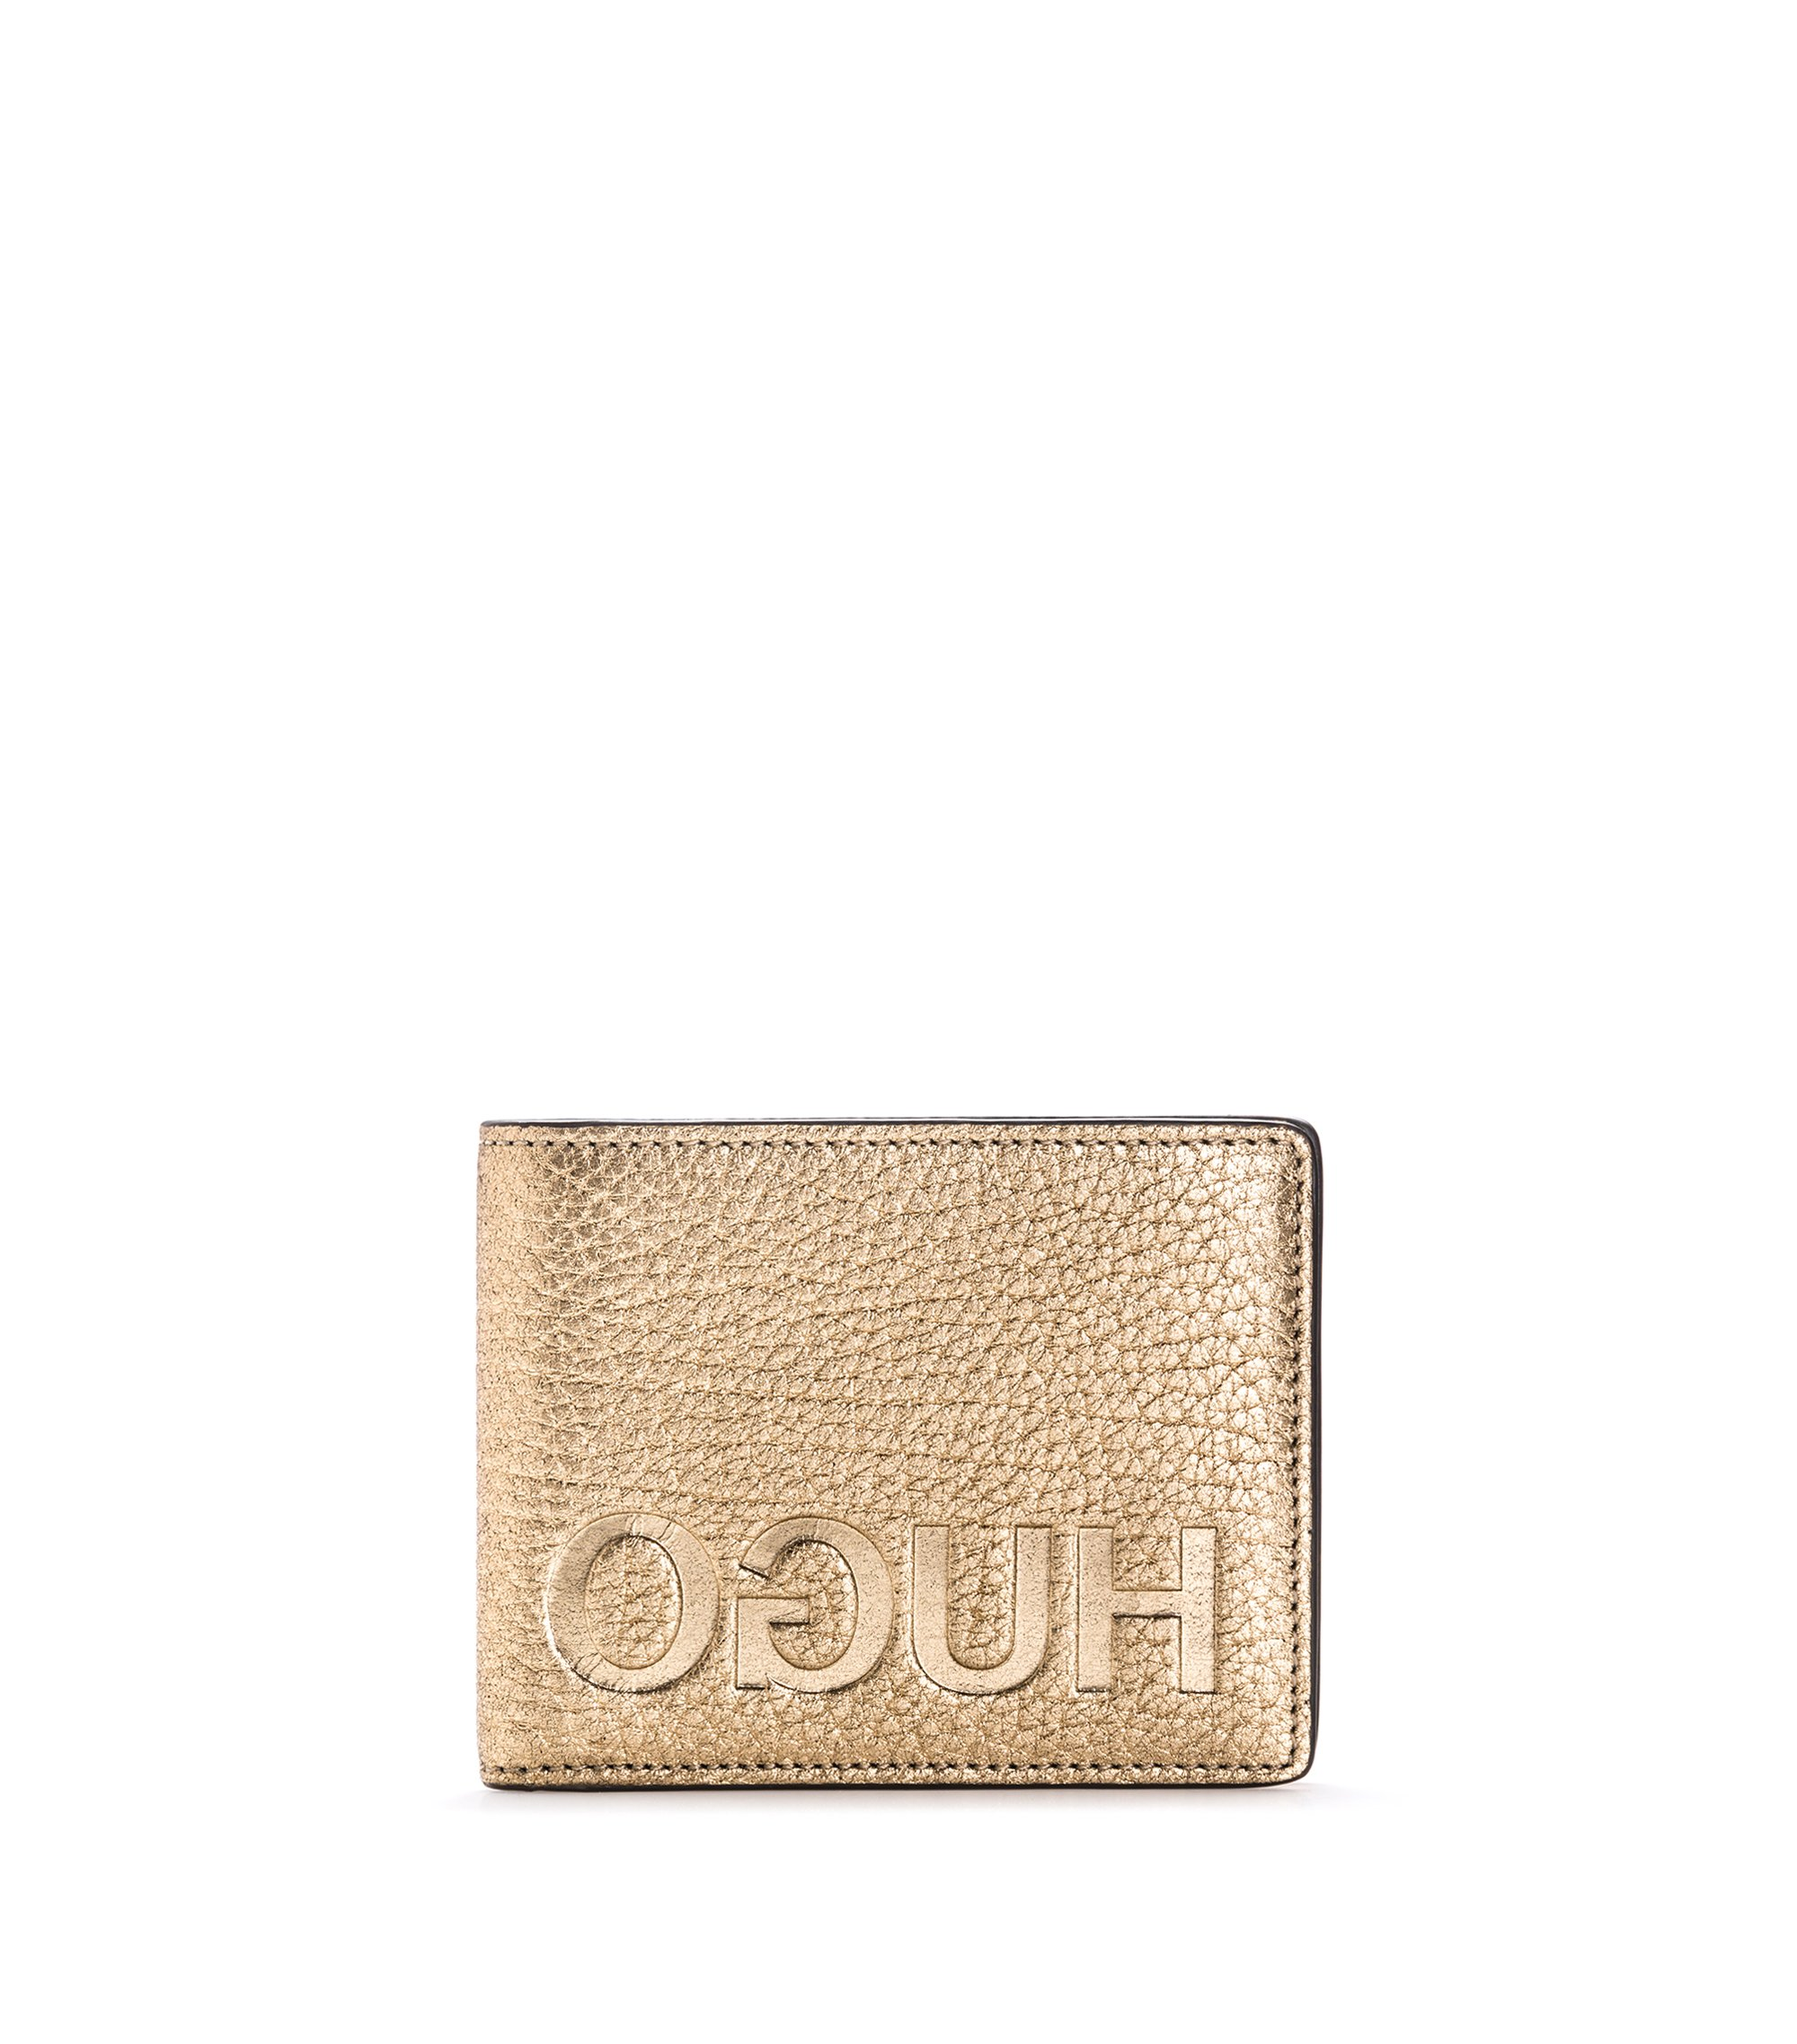 Gold-Tone Leather Billfold Wallet | Victorian LL, Gold